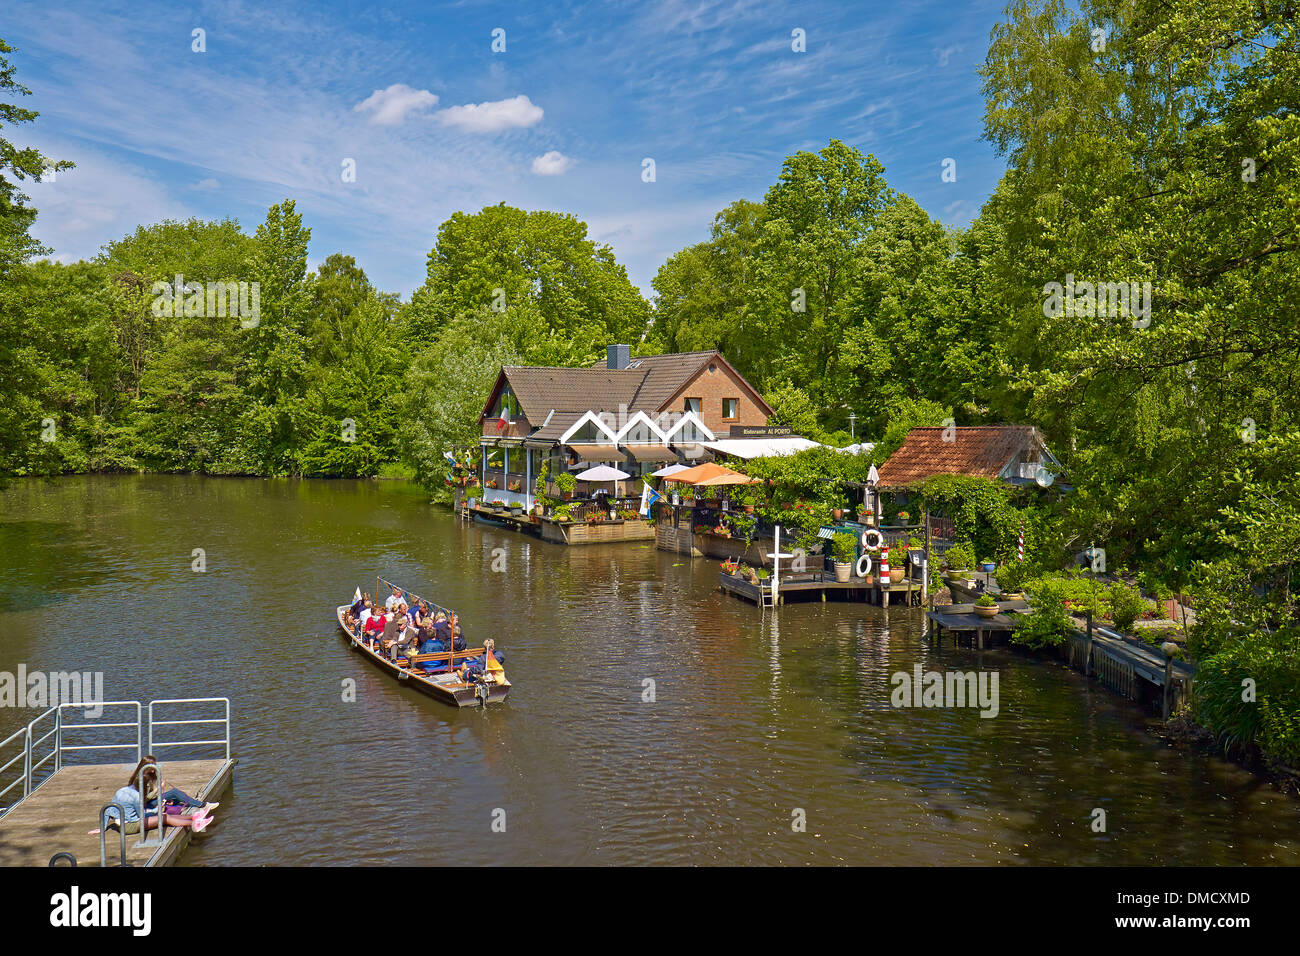 Canal boat or ark tours, Hanseatic city of Stade, Lower Saxony, Germany - Stock Image